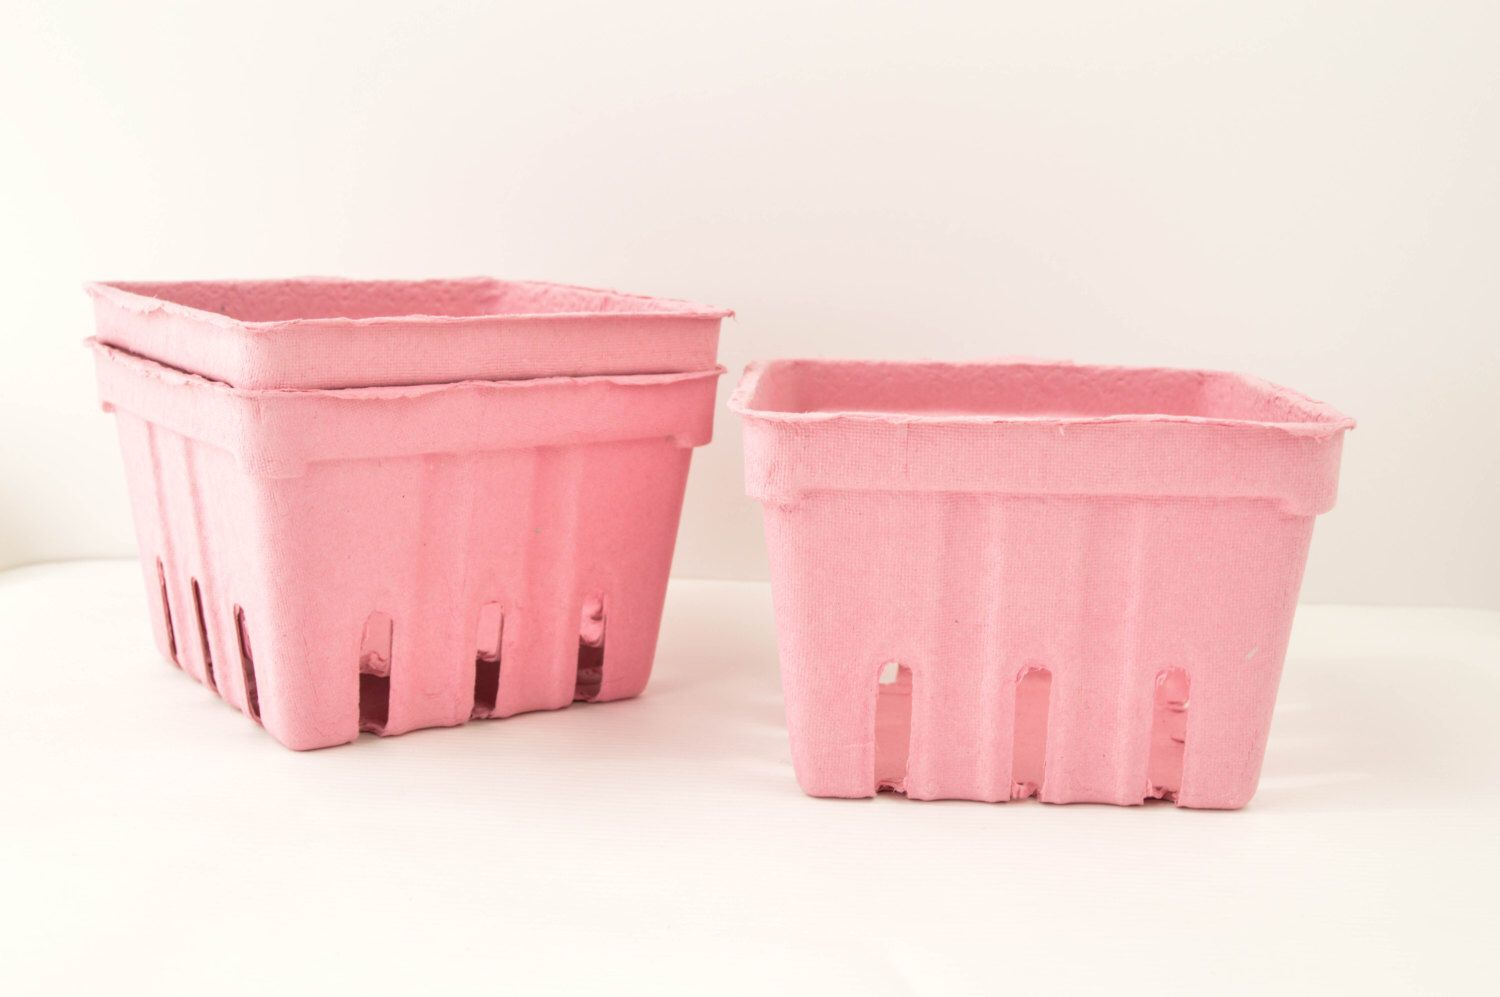 PINT BERRY BASKET /  pink /  pint basket / craft supplies /  basket / crafting Supply / paper and party supplies by ButtercupBlossom on Etsy https://www.etsy.com/listing/229058073/pint-berry-basket-pink-pint-basket-craft